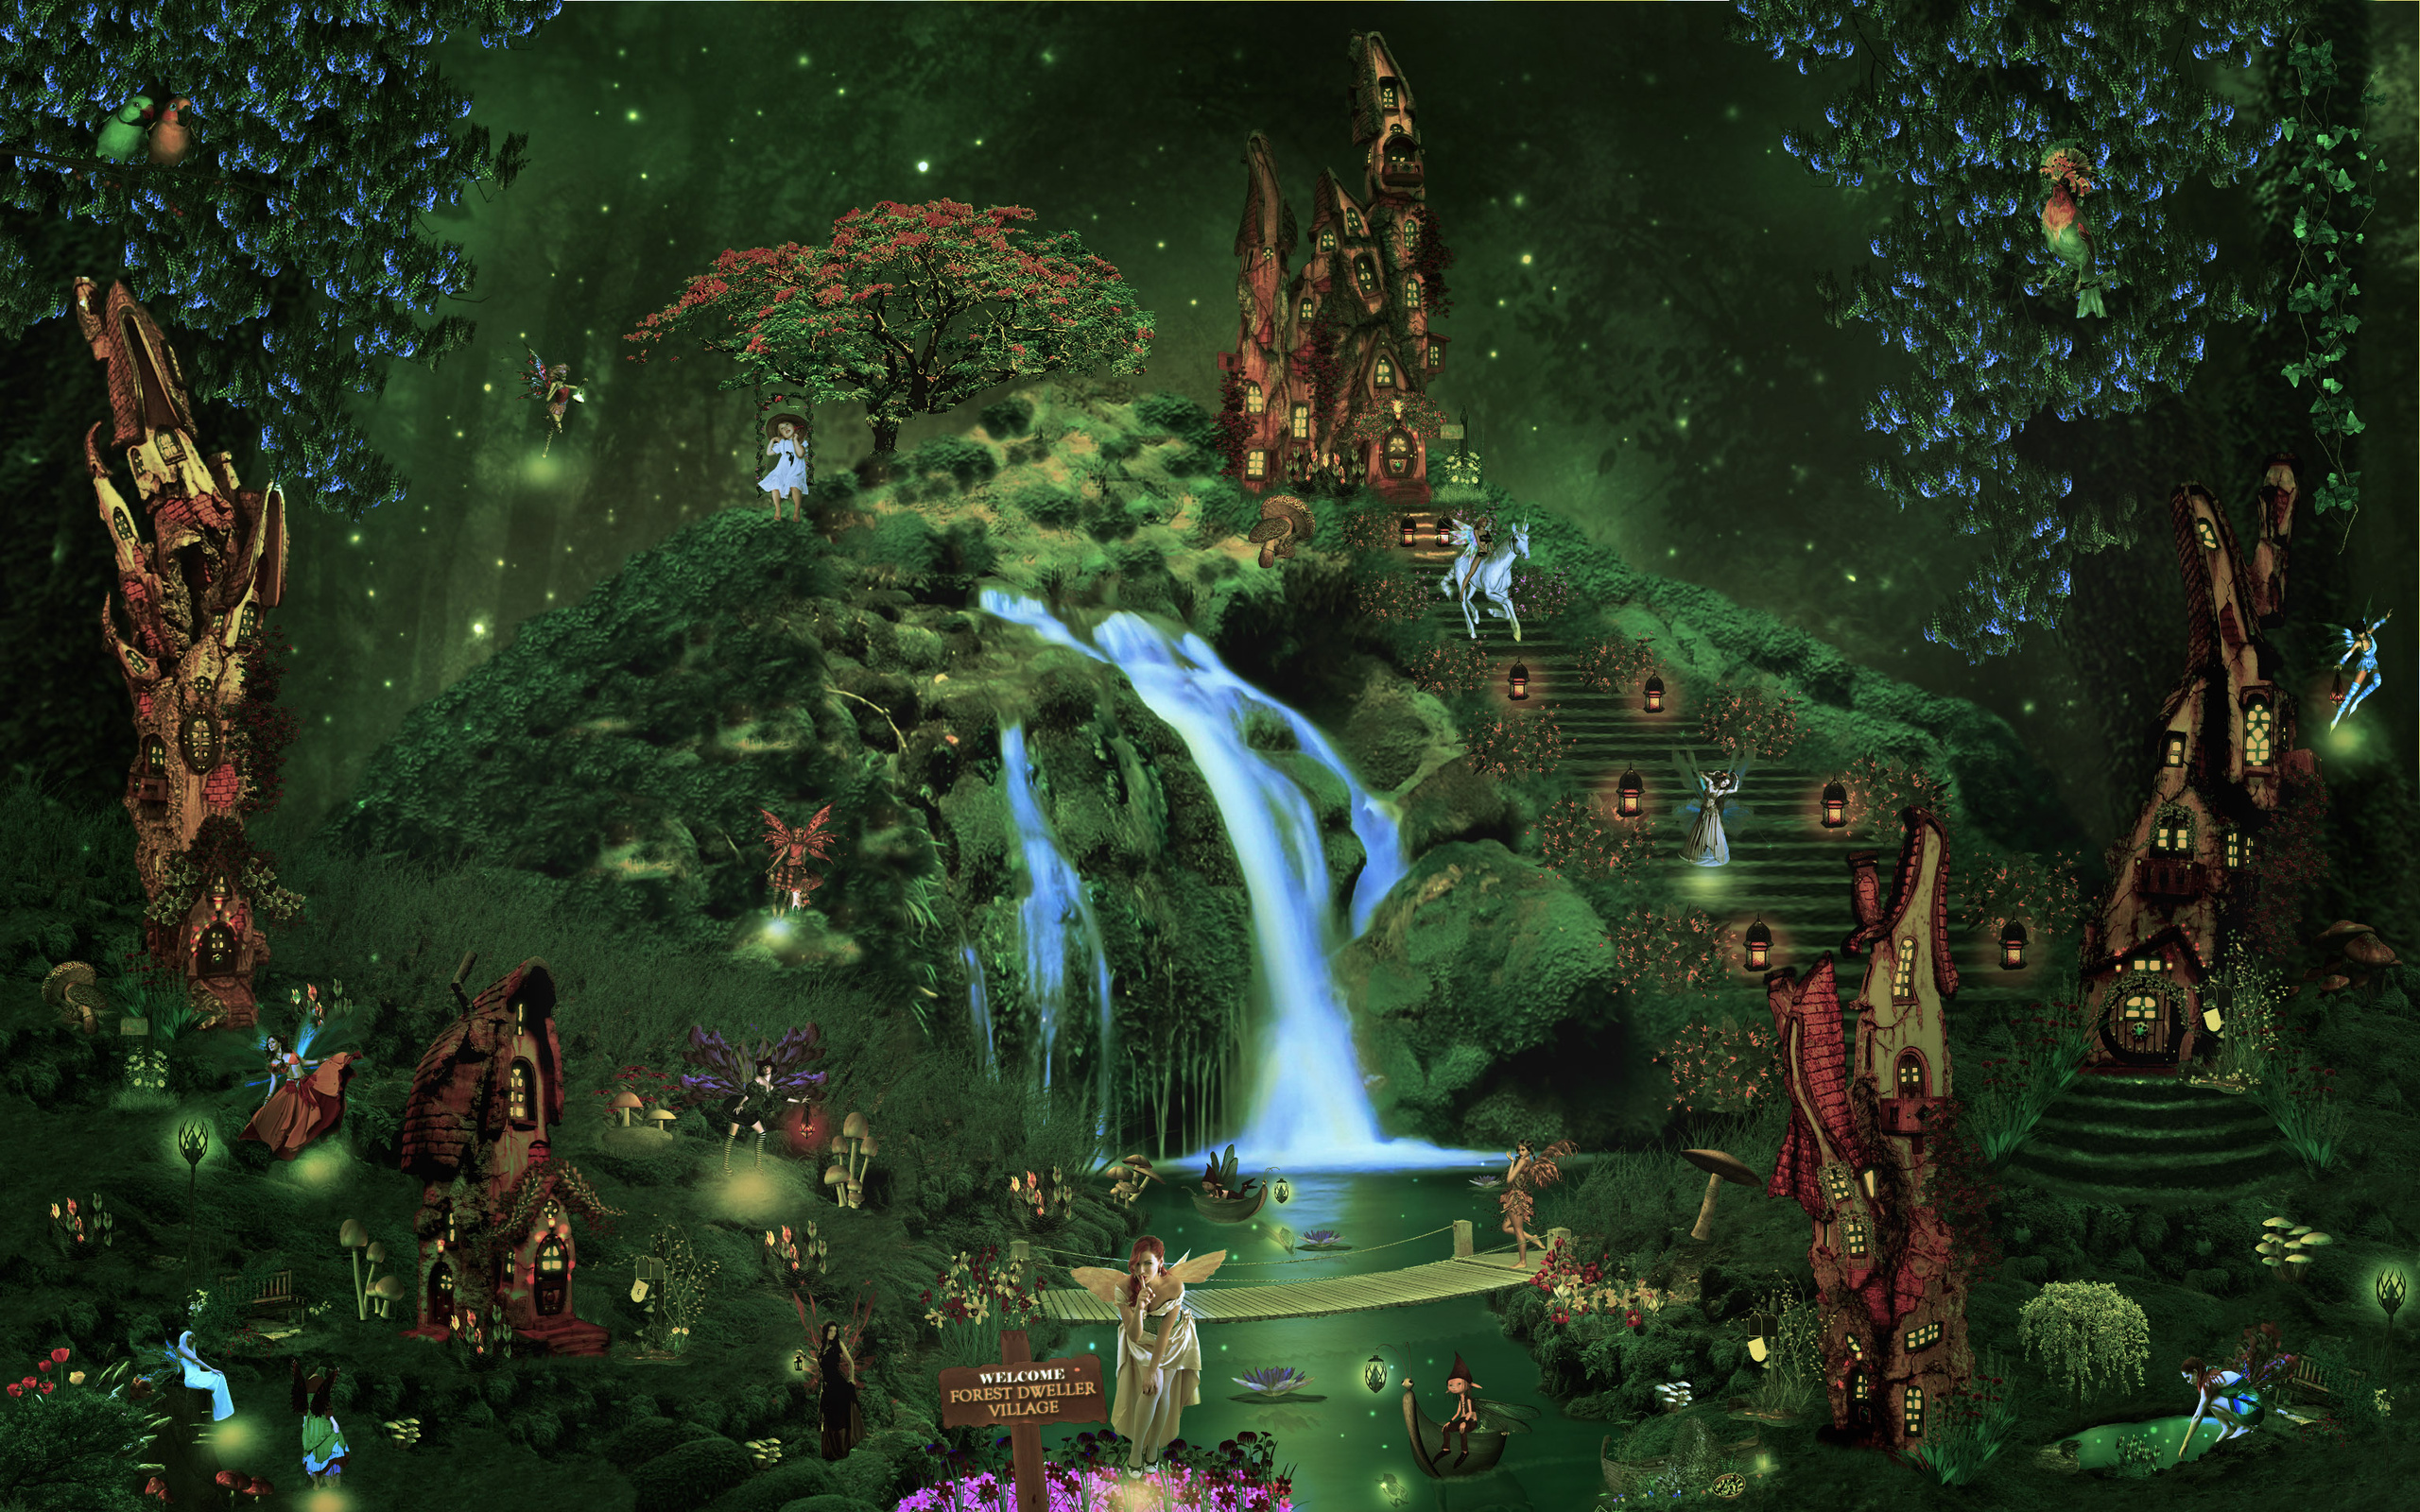 castle city forest waterfall fairy elf magical wallpaper background 2560x1600